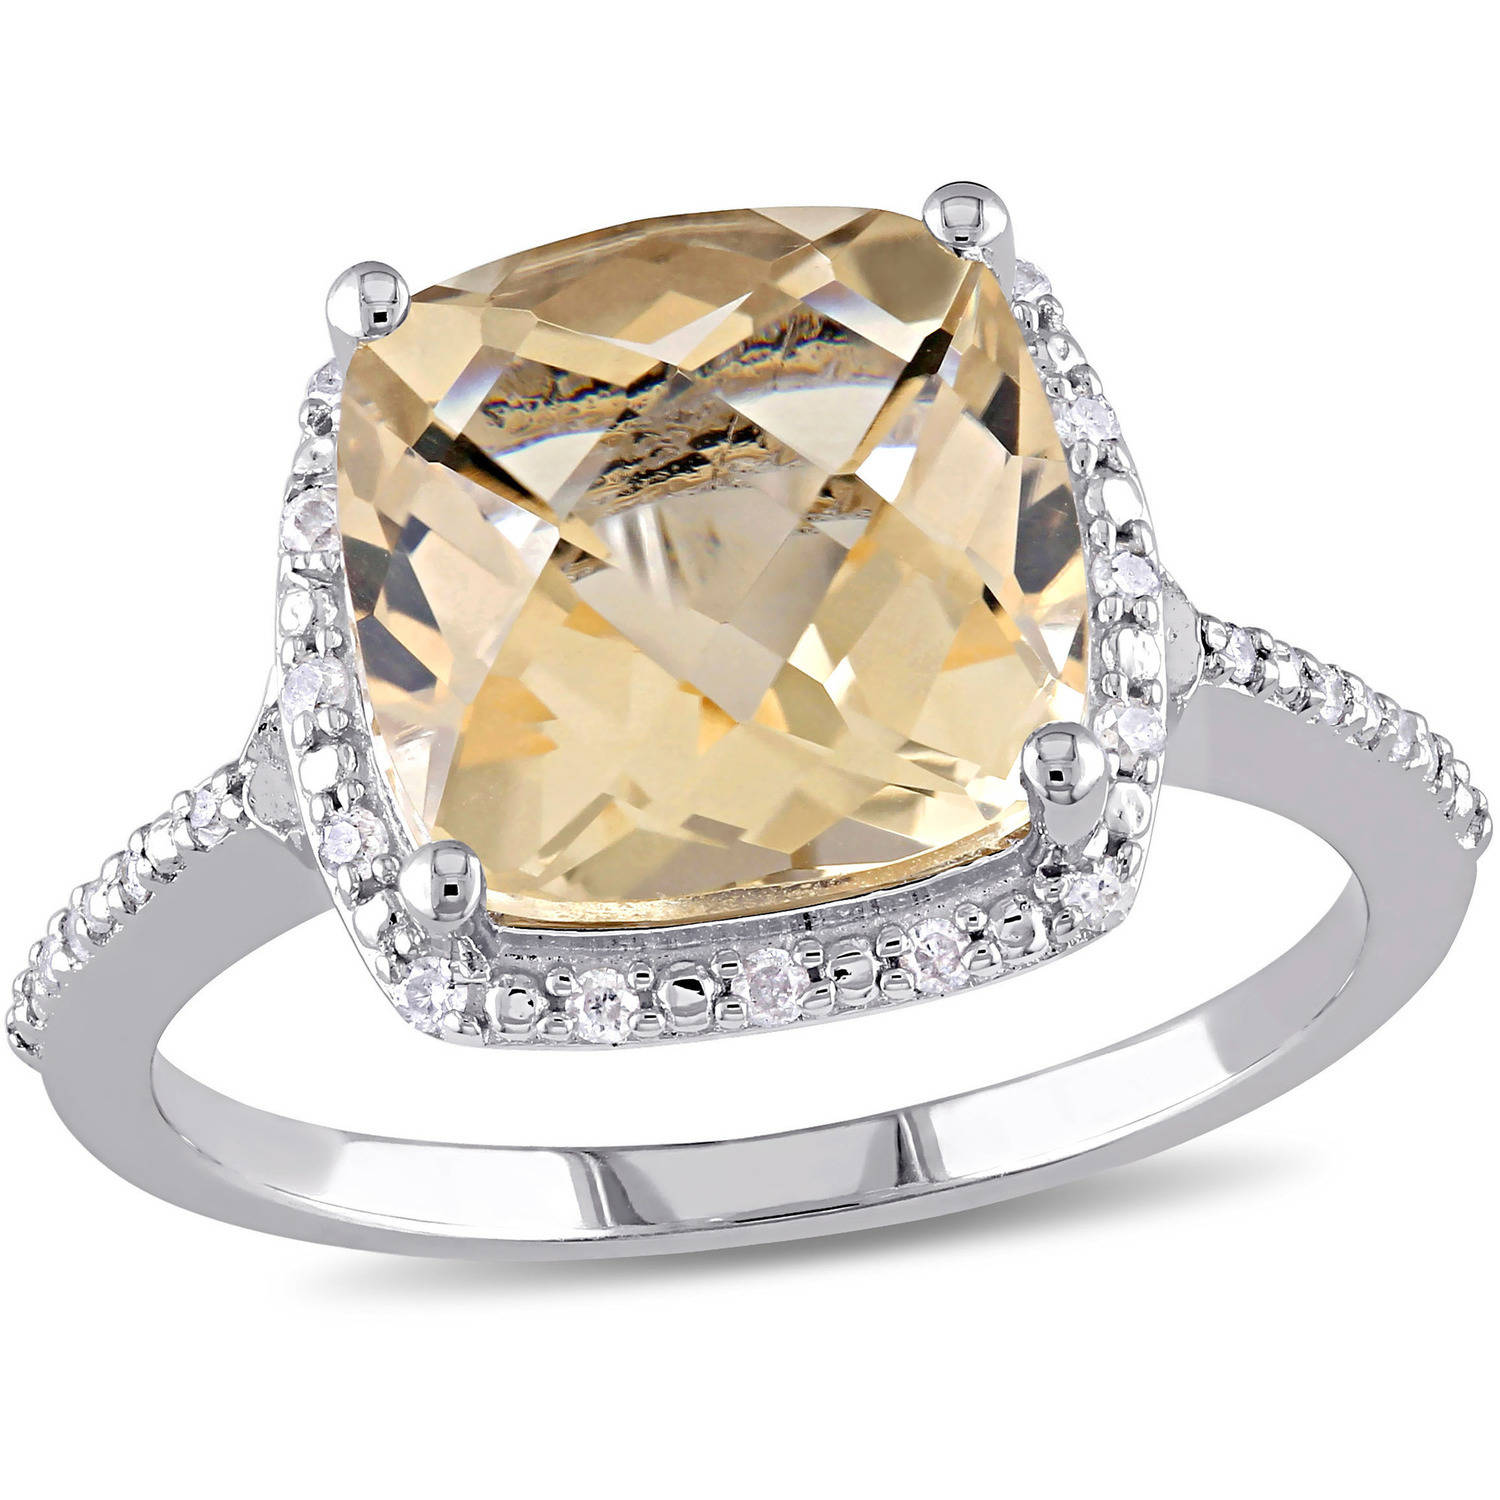 Tangelo 4 Carat T.G.W. Cushion-Cut Citrine and 1/10 Carat T.W. Diamond Sterling Silver Halo Cocktail Ring